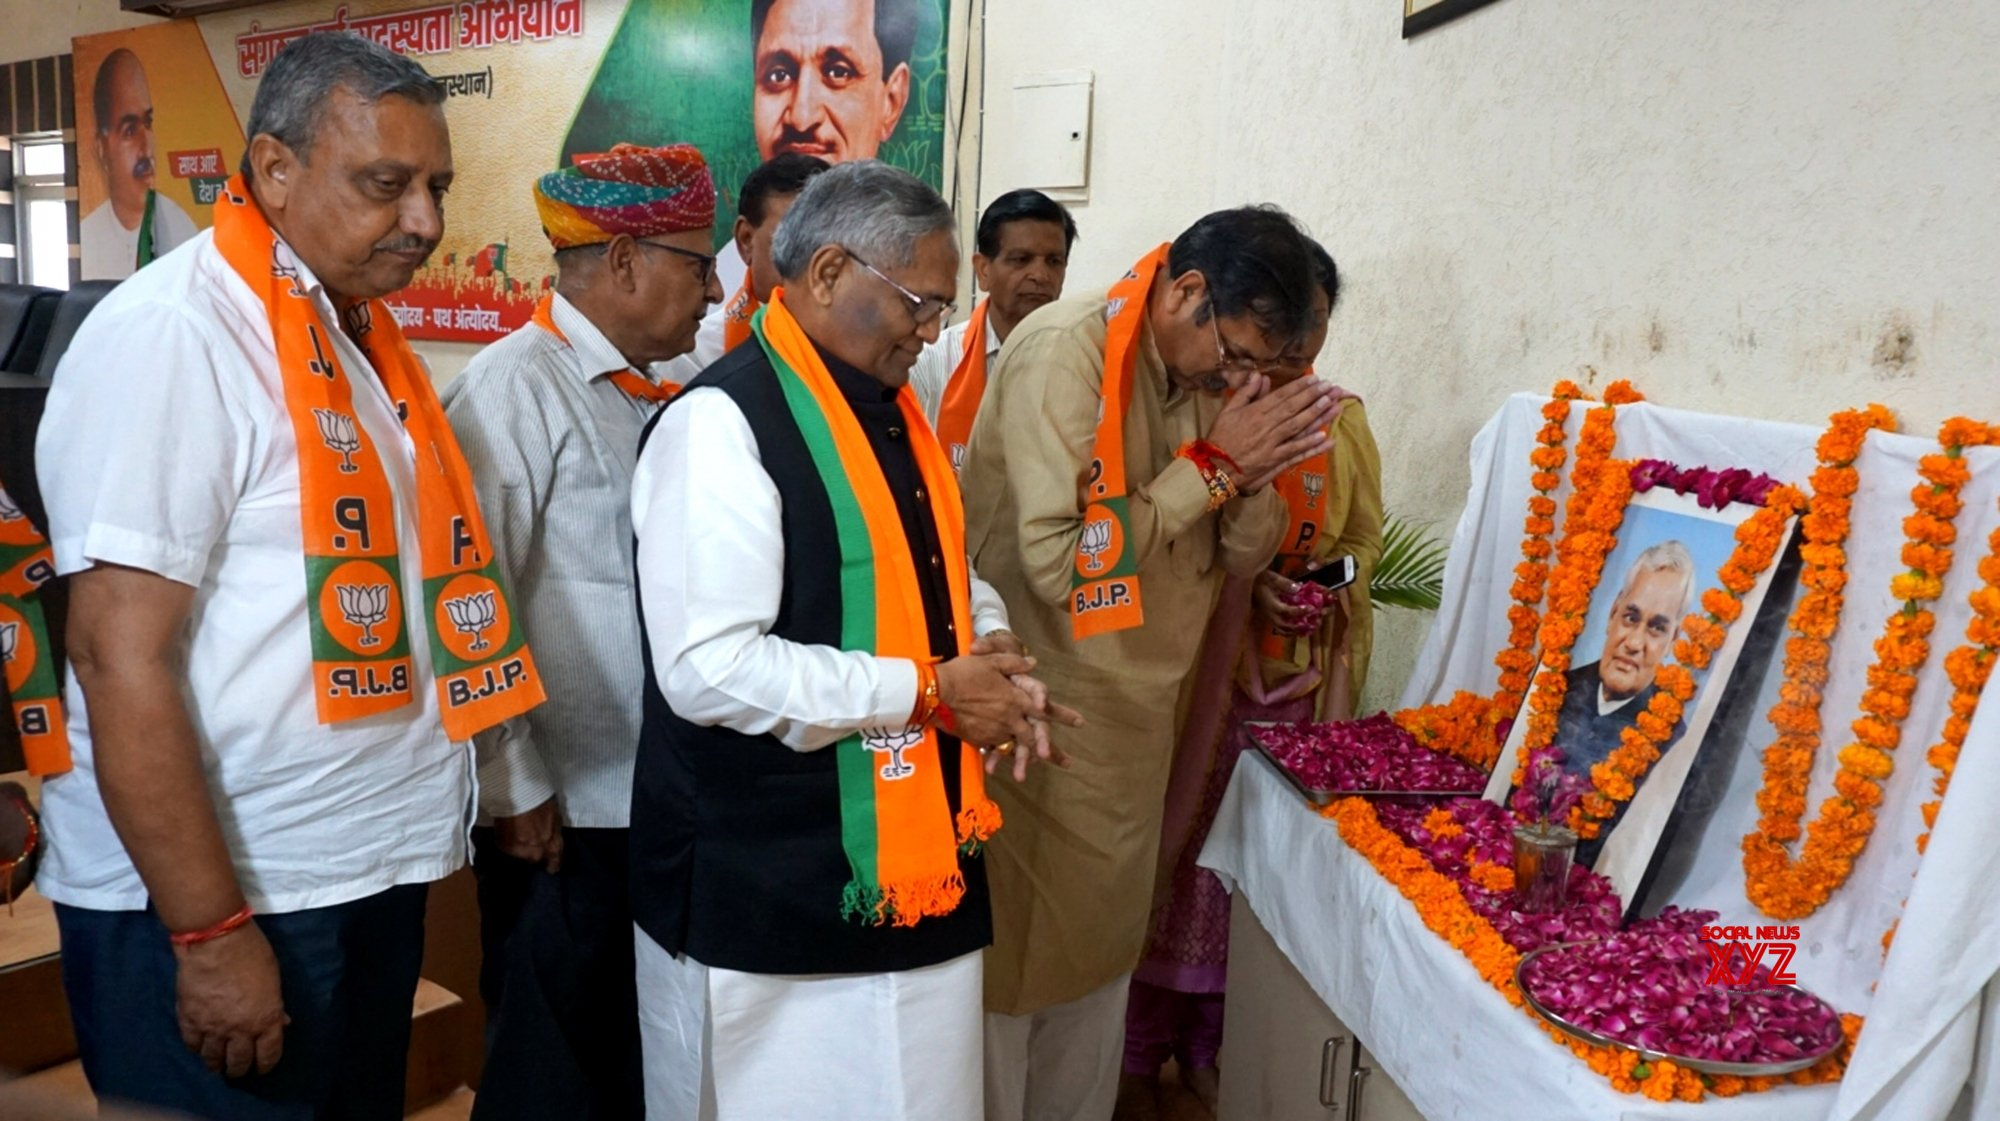 Jaipur: Atal Bihari Vajpayee's first death anniversary - BJP workers pay tributes #Gallery